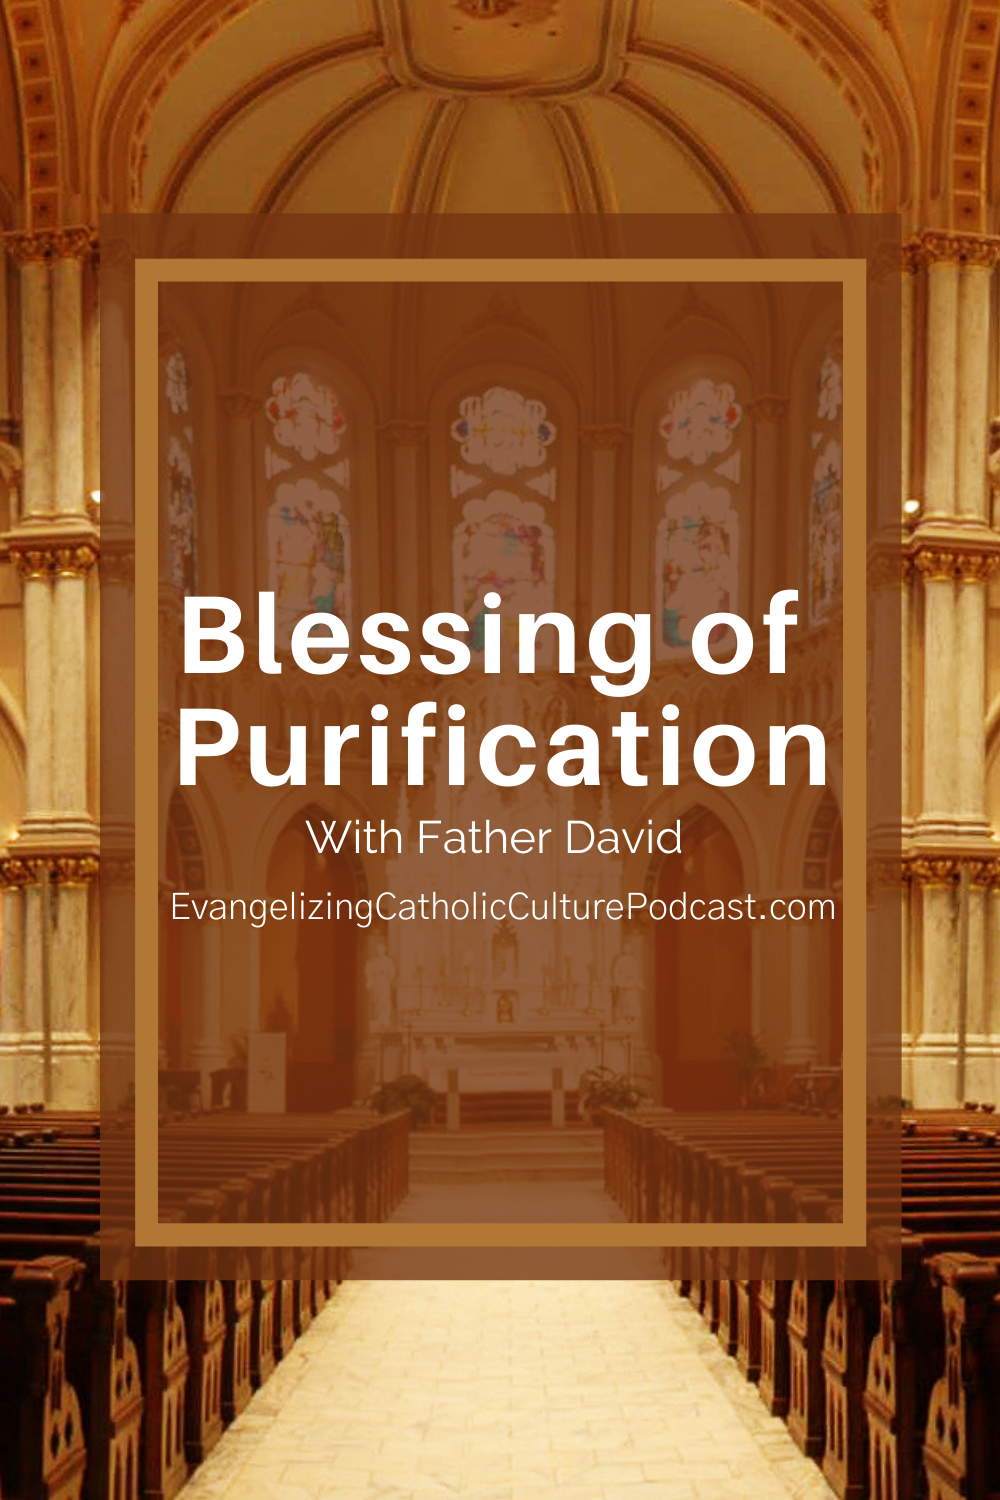 Blessing of Purification